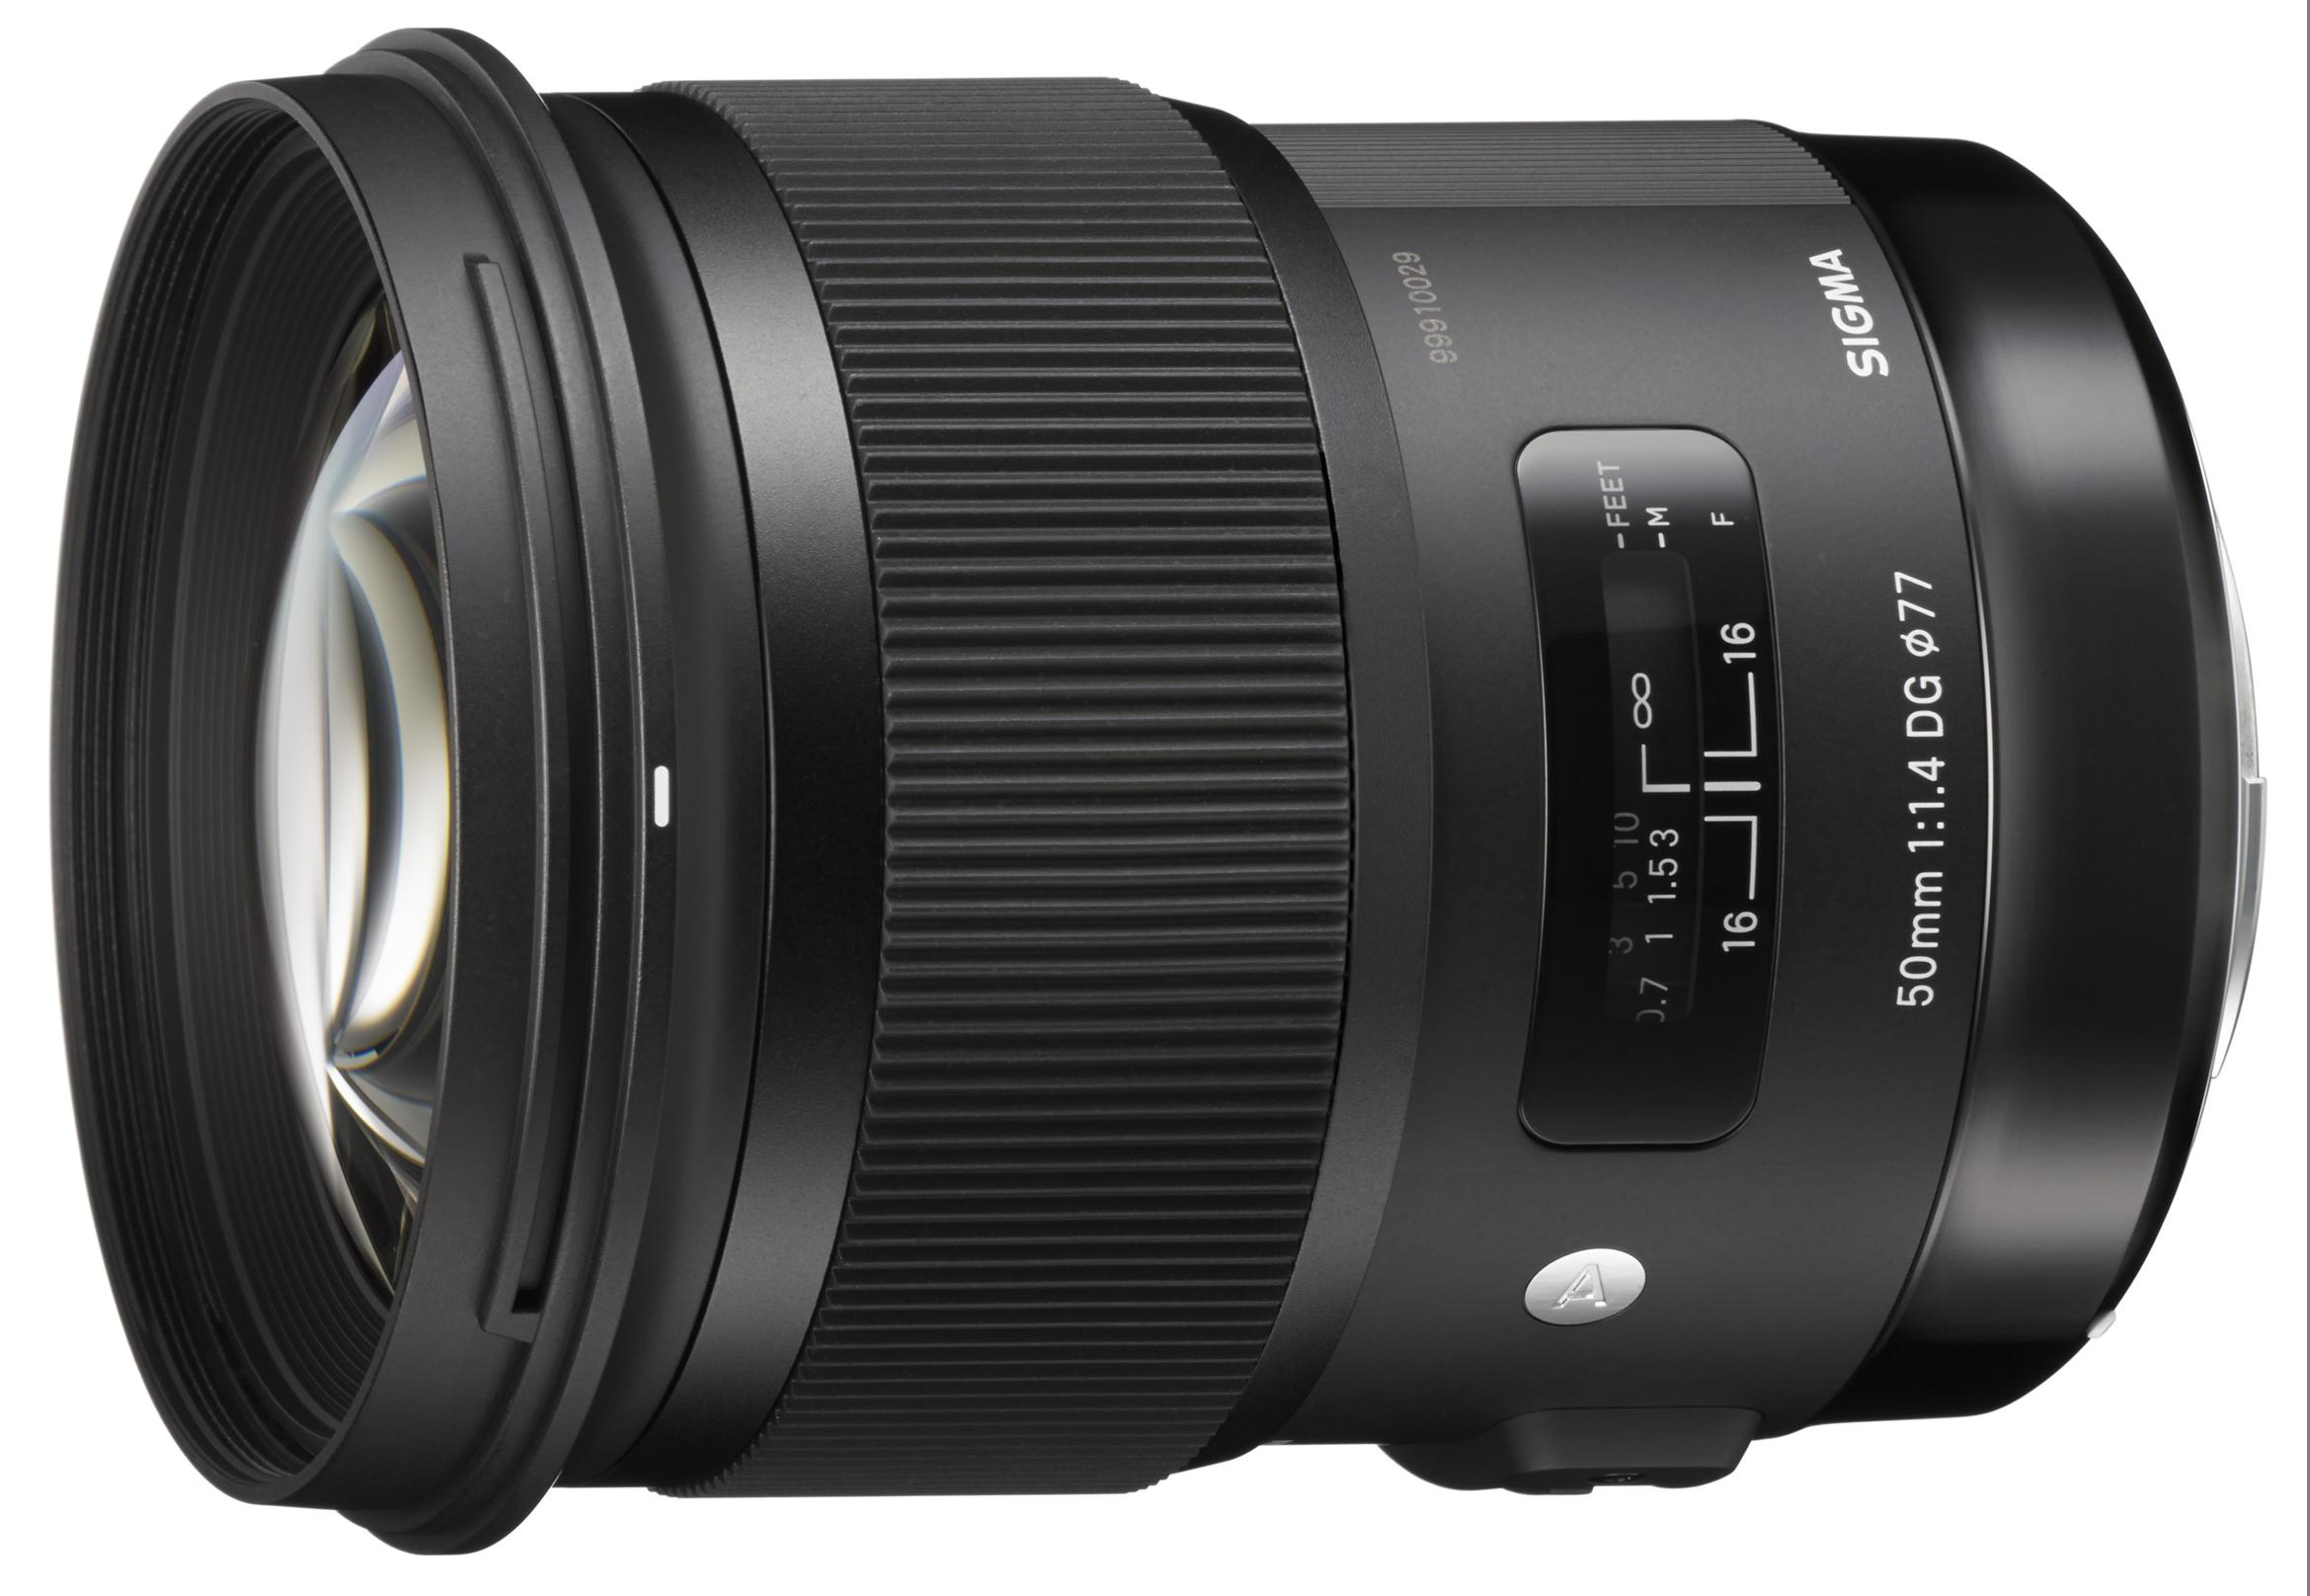 Sigma 50mm f/1.4 DG HSM Art Lens Announced – Camera News at Cameraegg